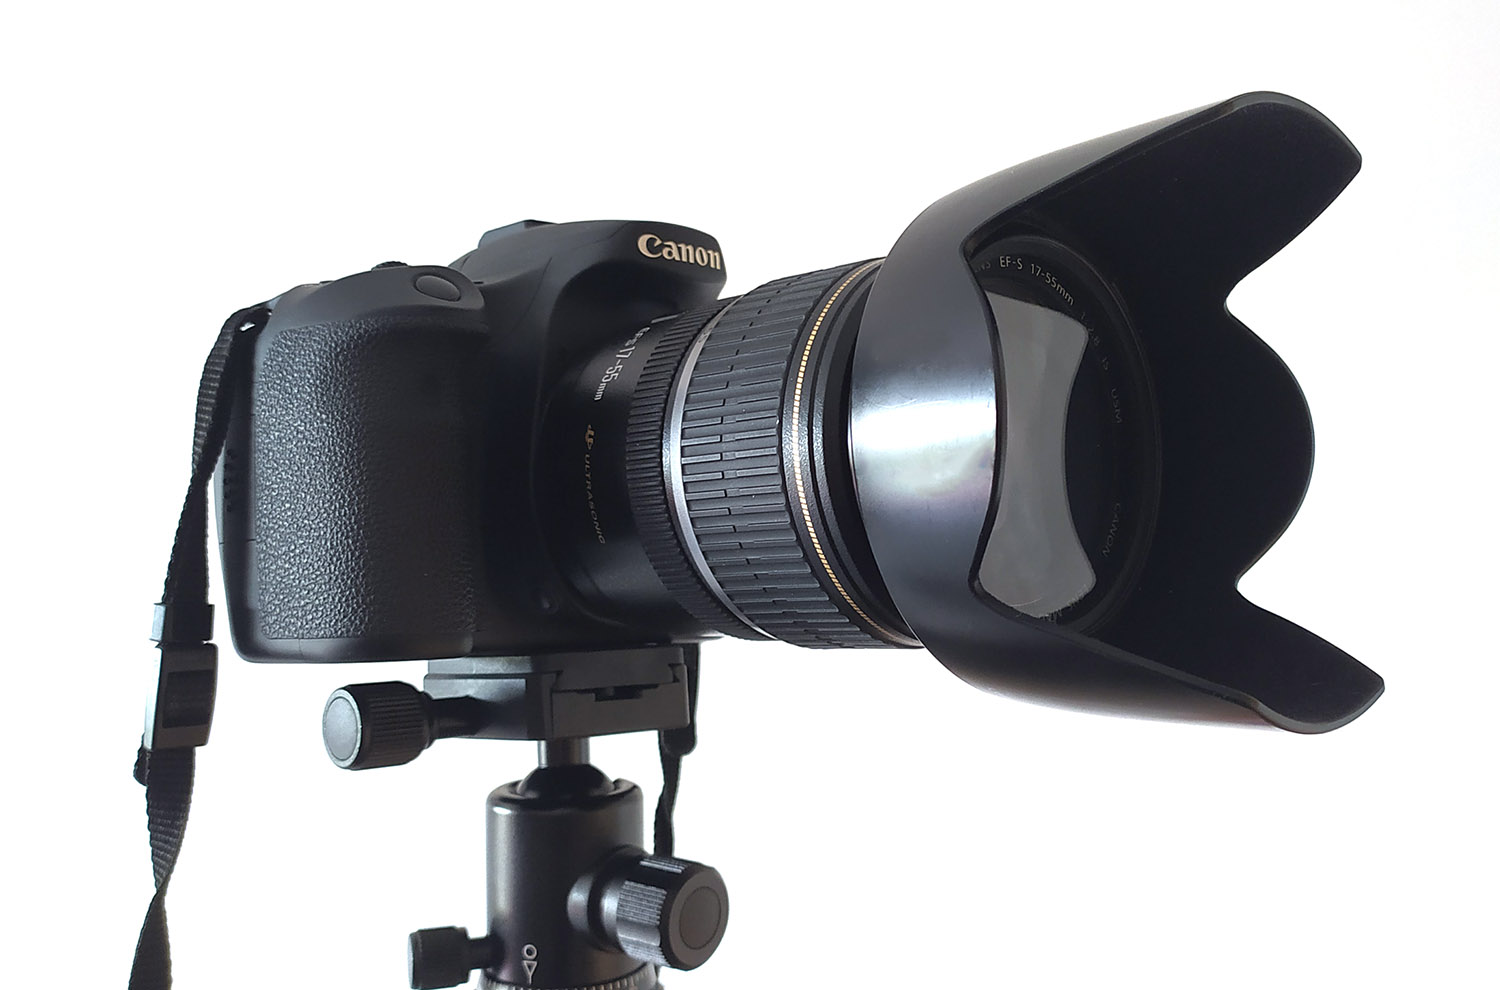 Canon camera on a tripod with a lens hood